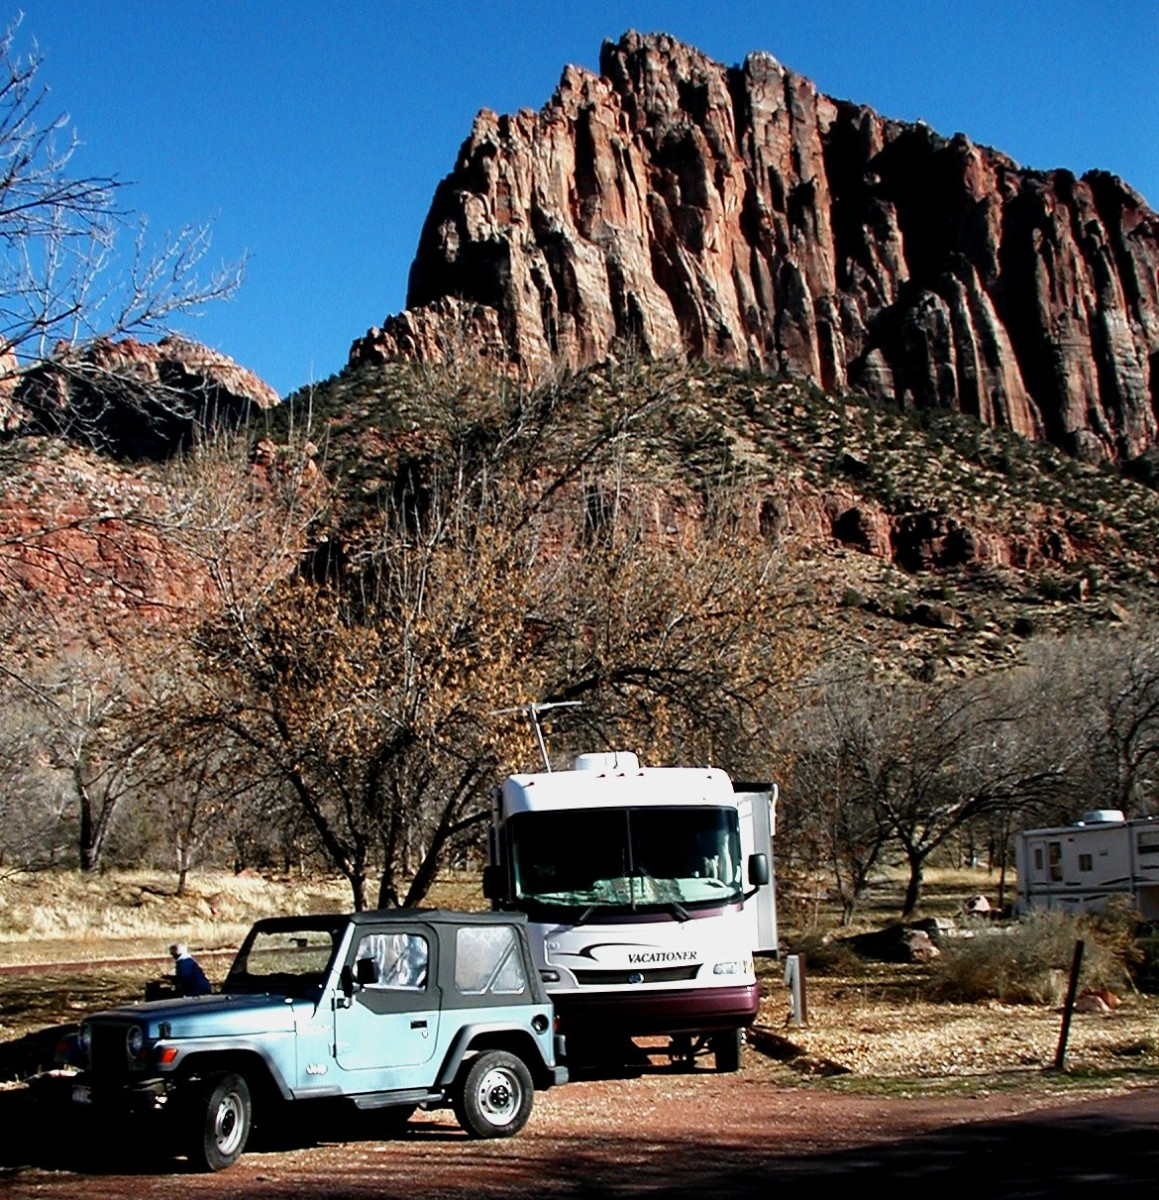 Campsite at Zion National Park with beautiful rock formations in the background.